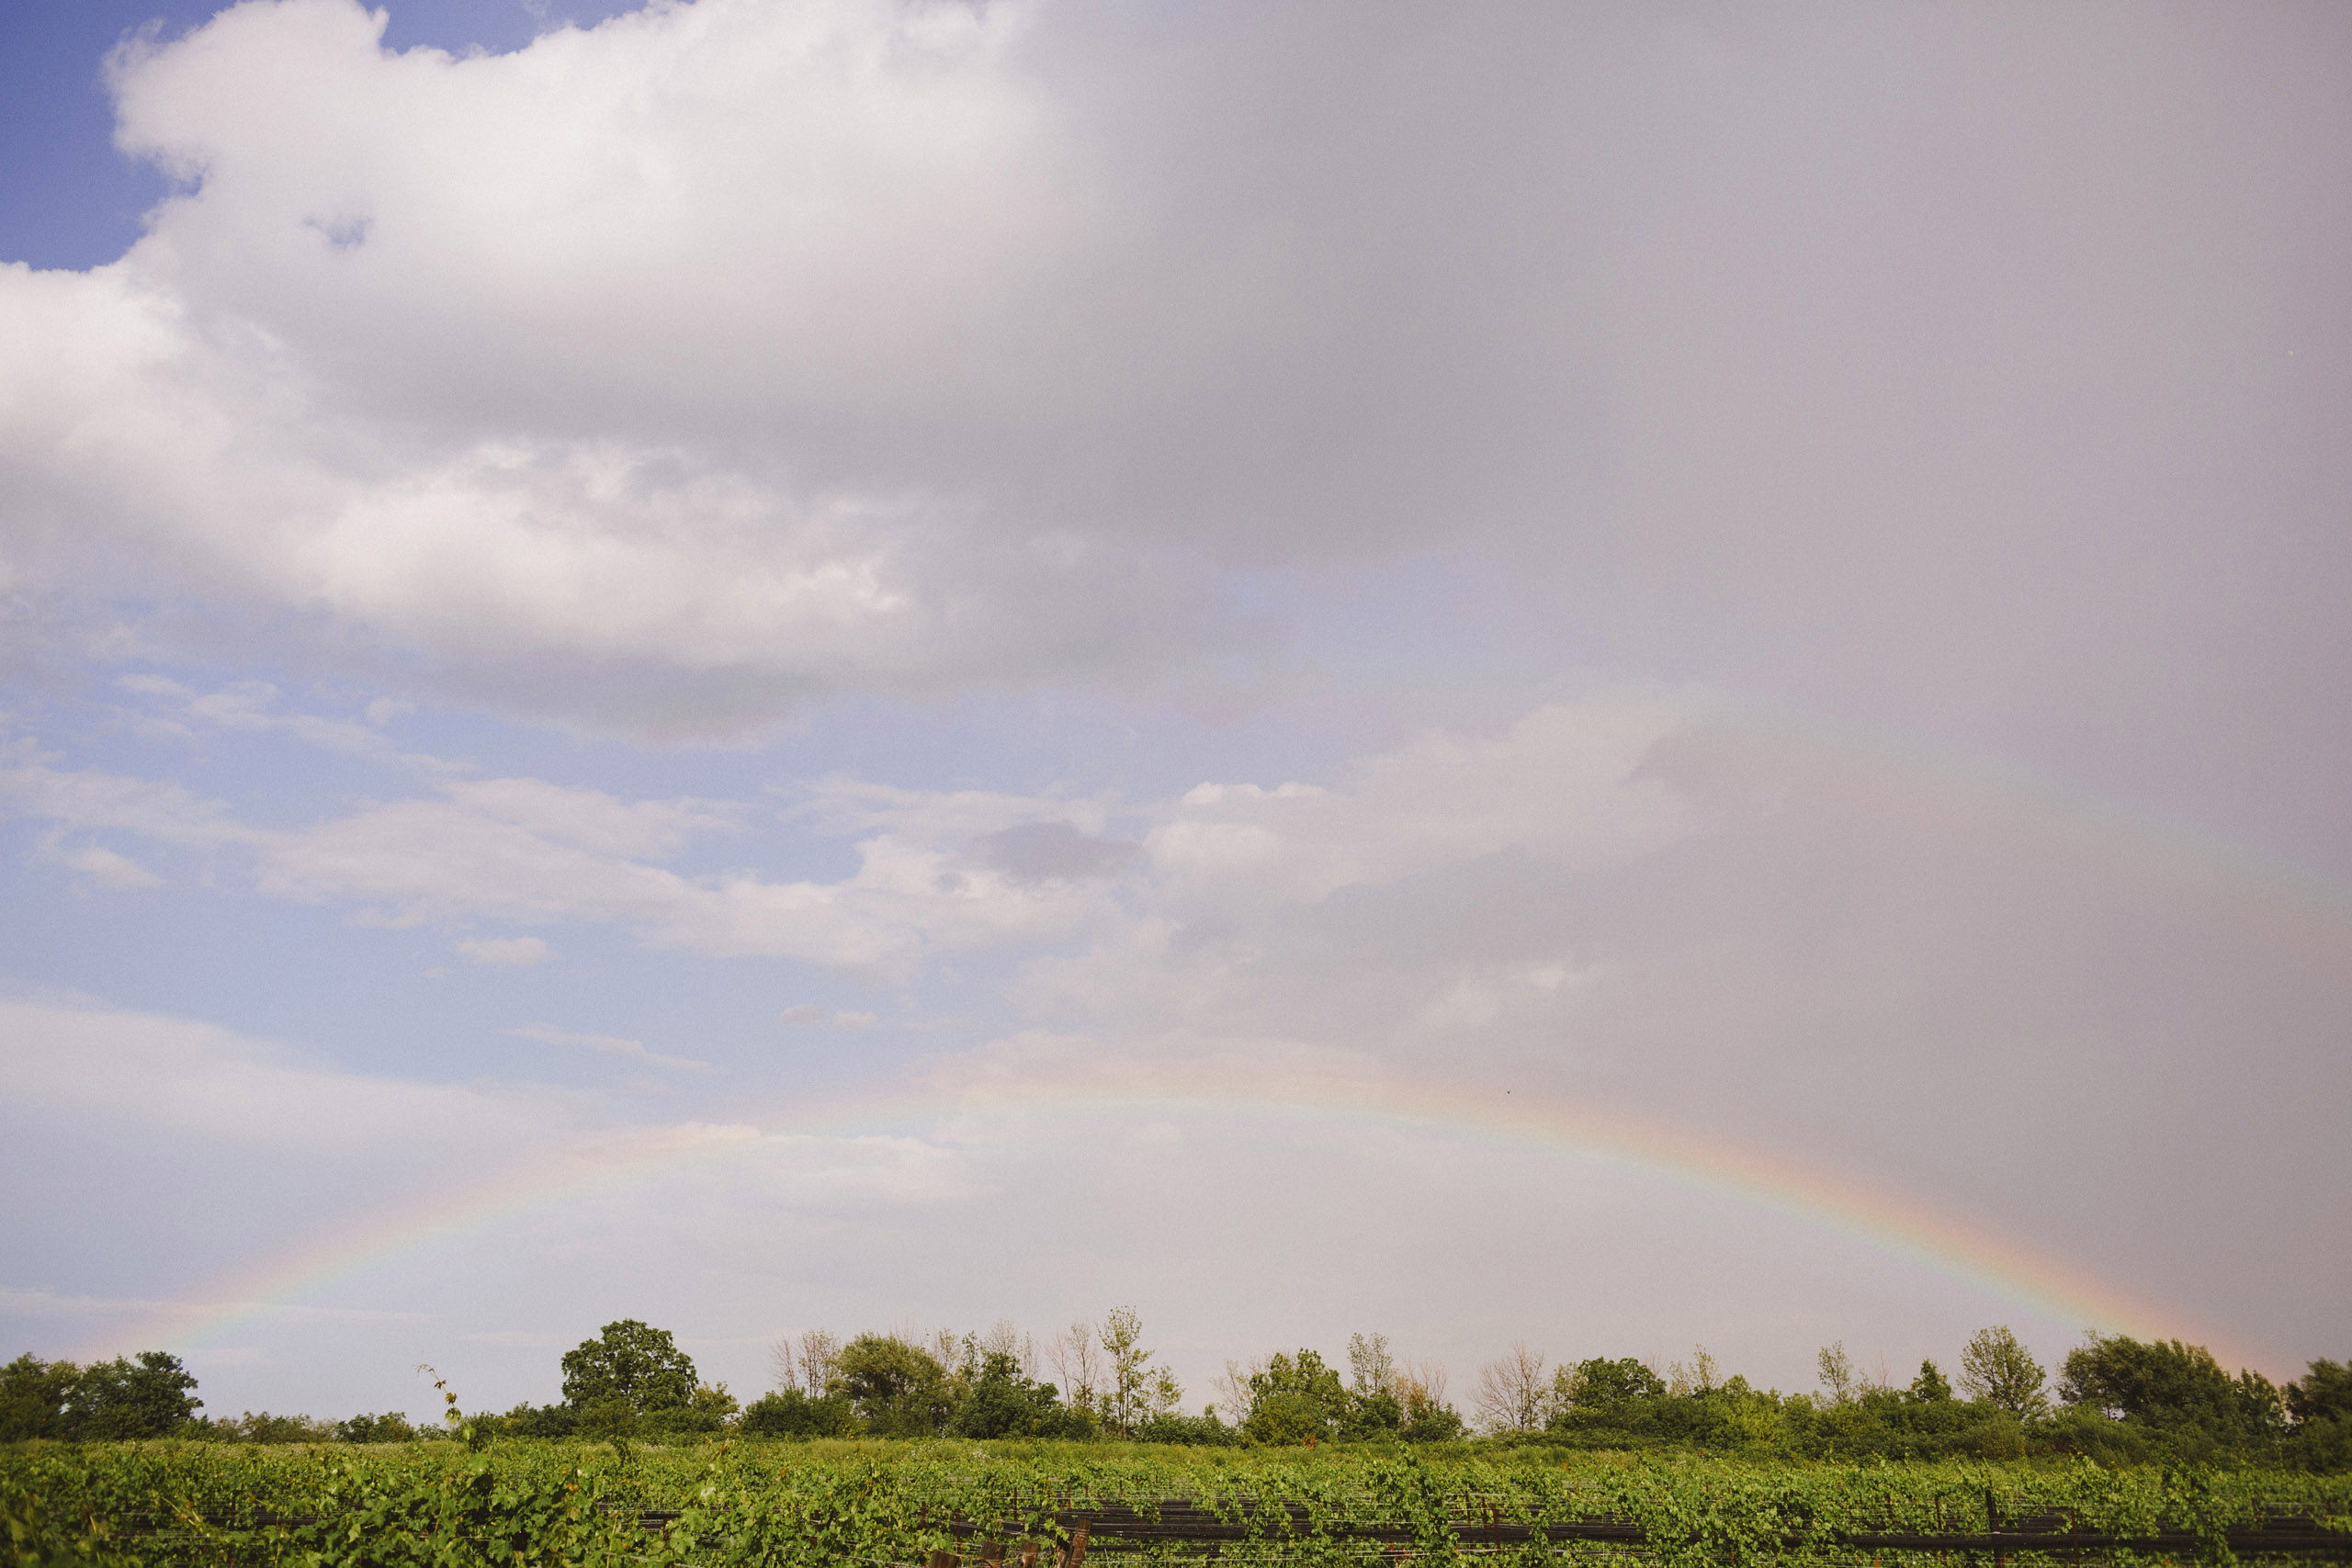 winery vineyard rainbow southbrook rain cloud wedding day